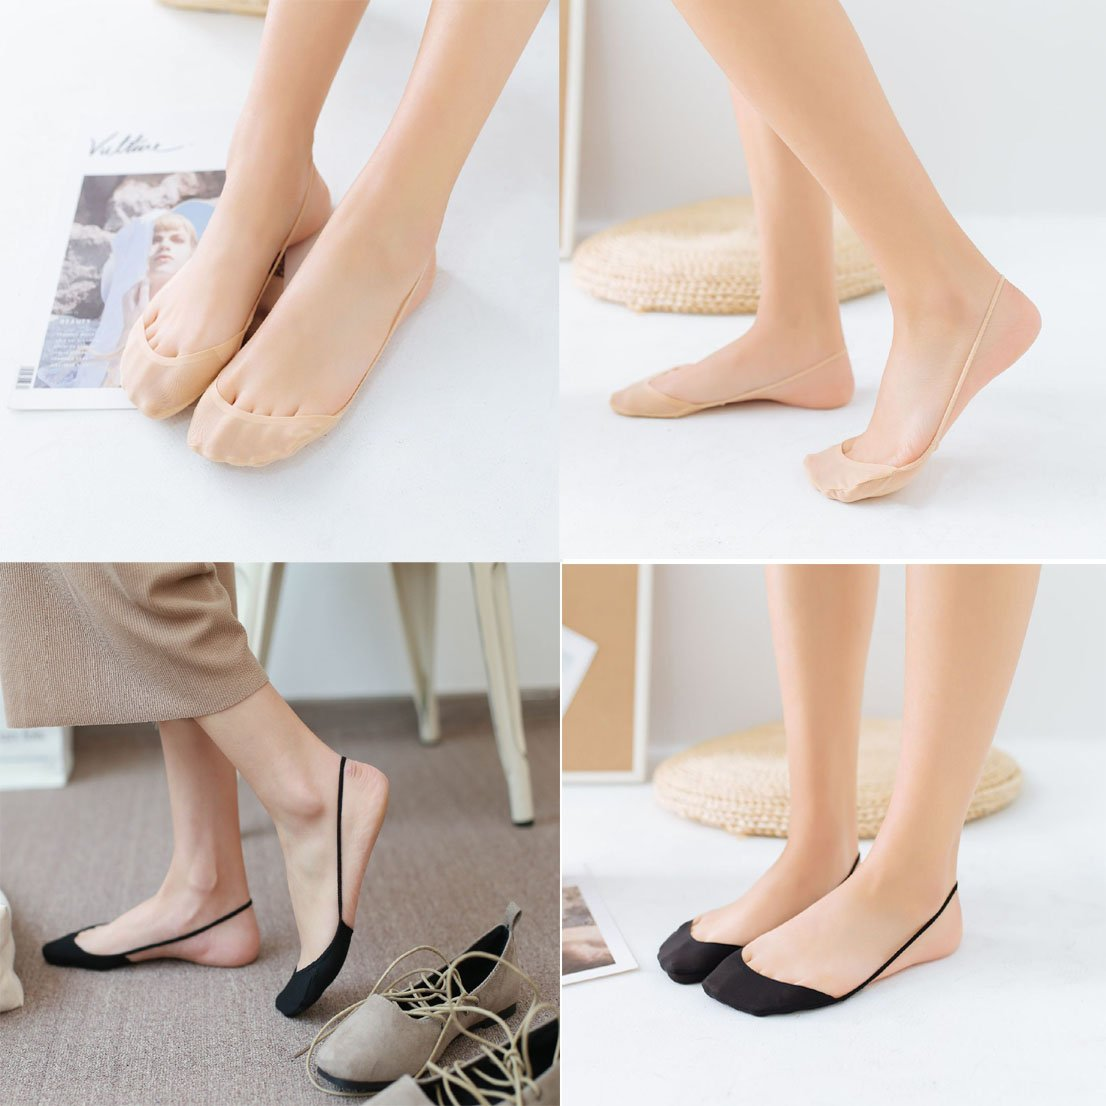 6 Pack No Show Socks Women No Show Liner Socks Thin Low Cut Casual Socks Boat Socks with Gel Tab for Flats and High Heels